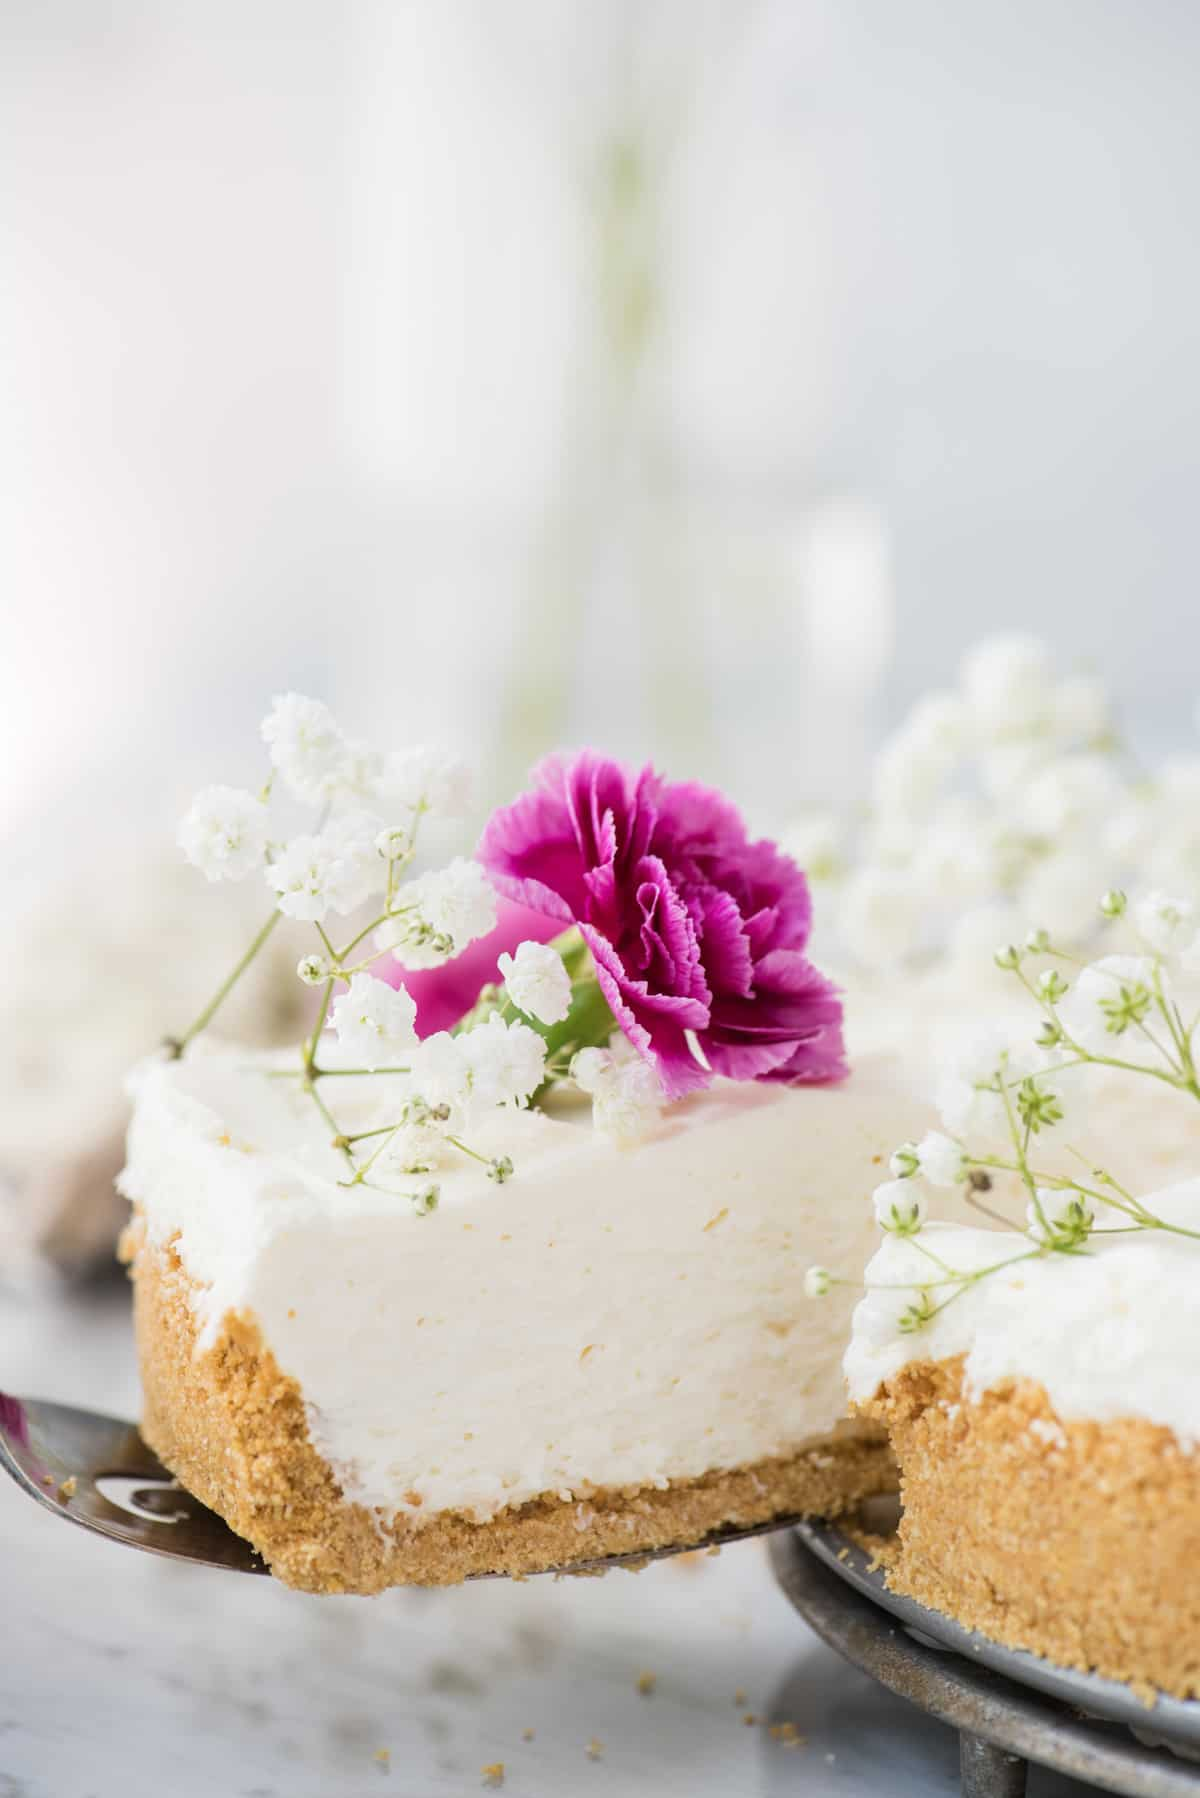 slice of no bake cheesecake with white and pink flowers being removed from rest of cheesecake